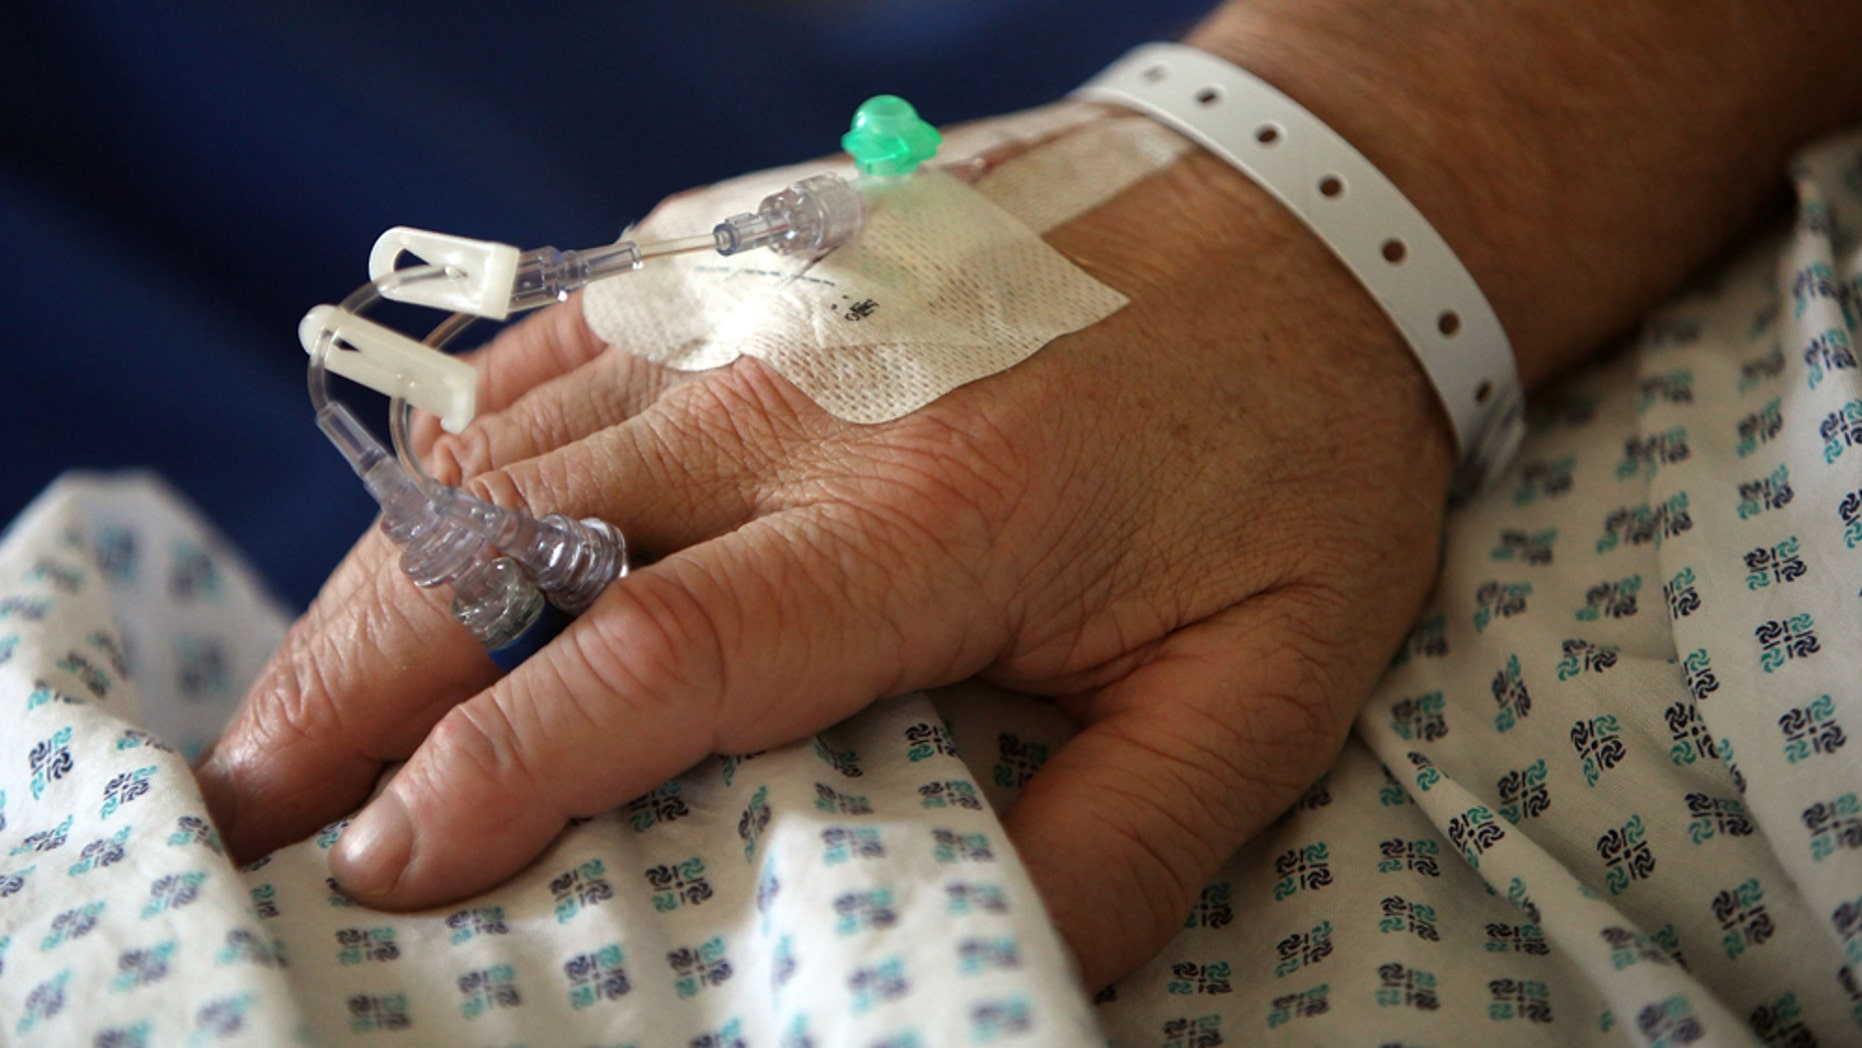 Apatient undergoes dialysis in an Atlanta hospital in an undatedphoto. (Getty Images)